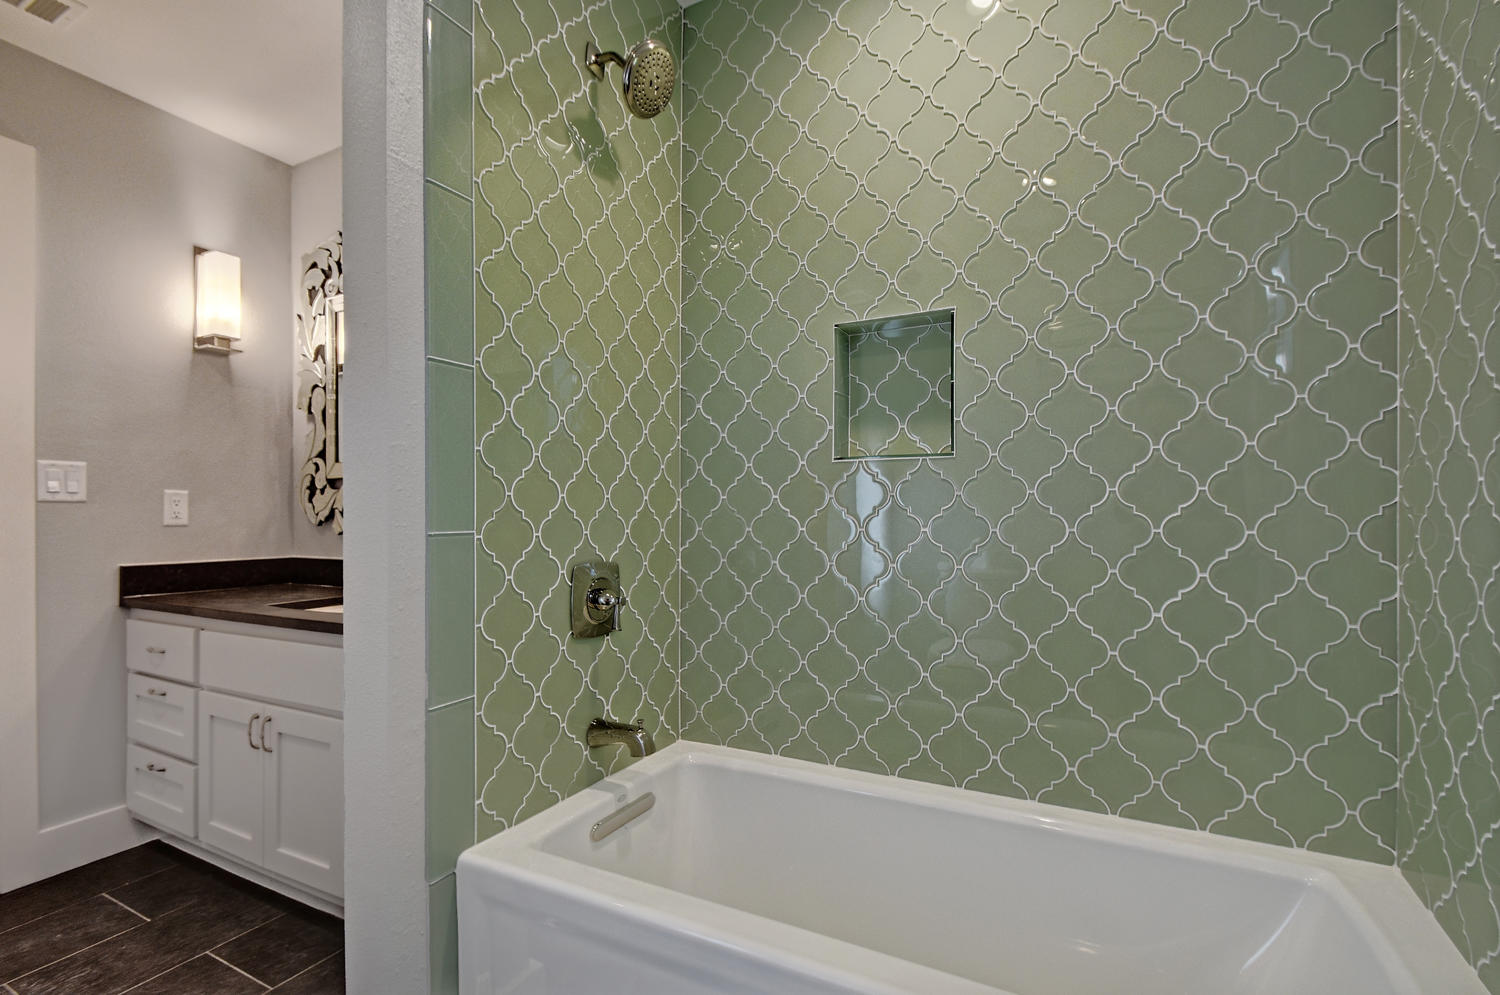 Bathroom Remodel with modern green tile